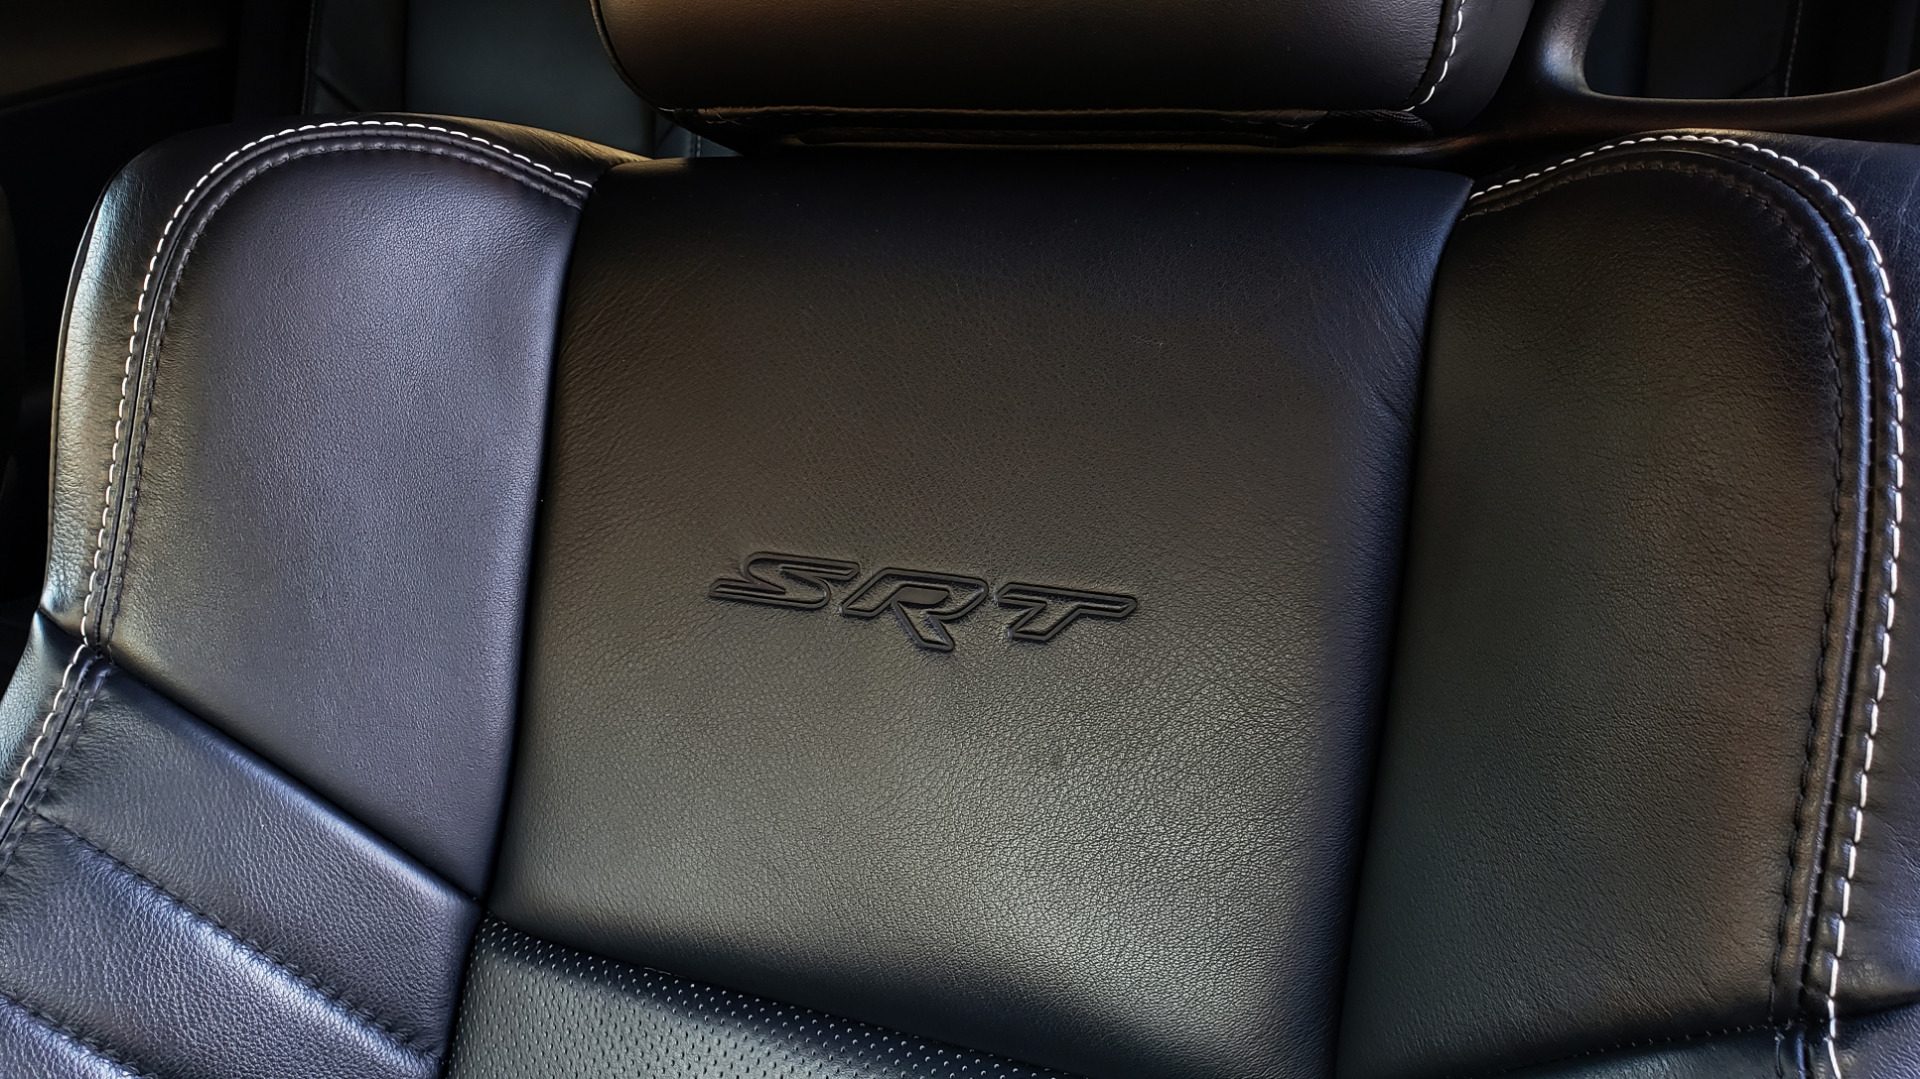 Used 2016 Dodge CHALLENGER SRT HELLCAT COUPE / 6-SPD MAN / NAV / SRT APPS / REARVIEW for sale Sold at Formula Imports in Charlotte NC 28227 46